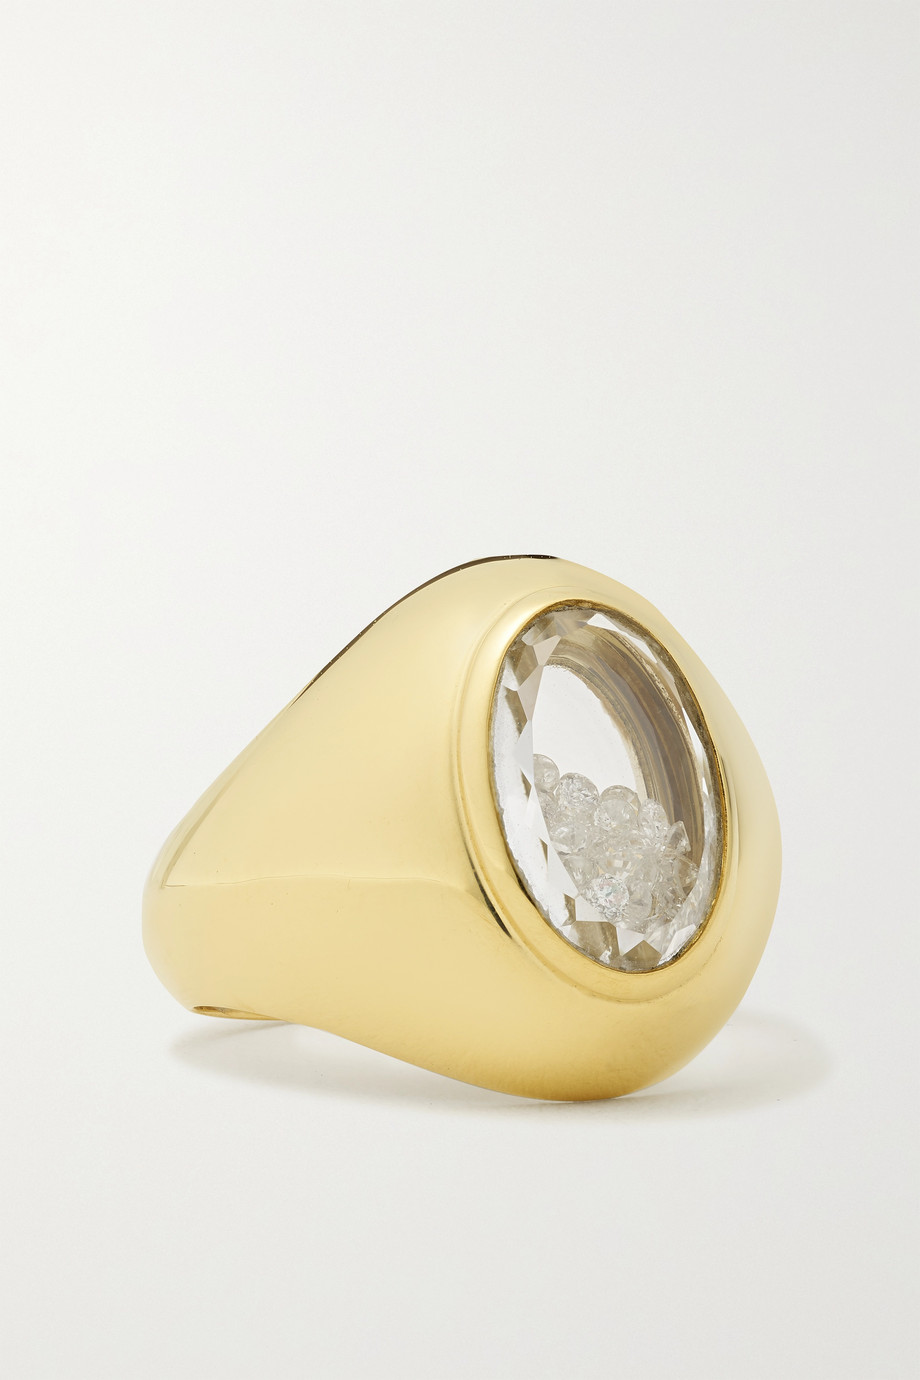 MORITZ GLIK Dedinho 18-karat gold, sapphire crystal and diamond signet ring